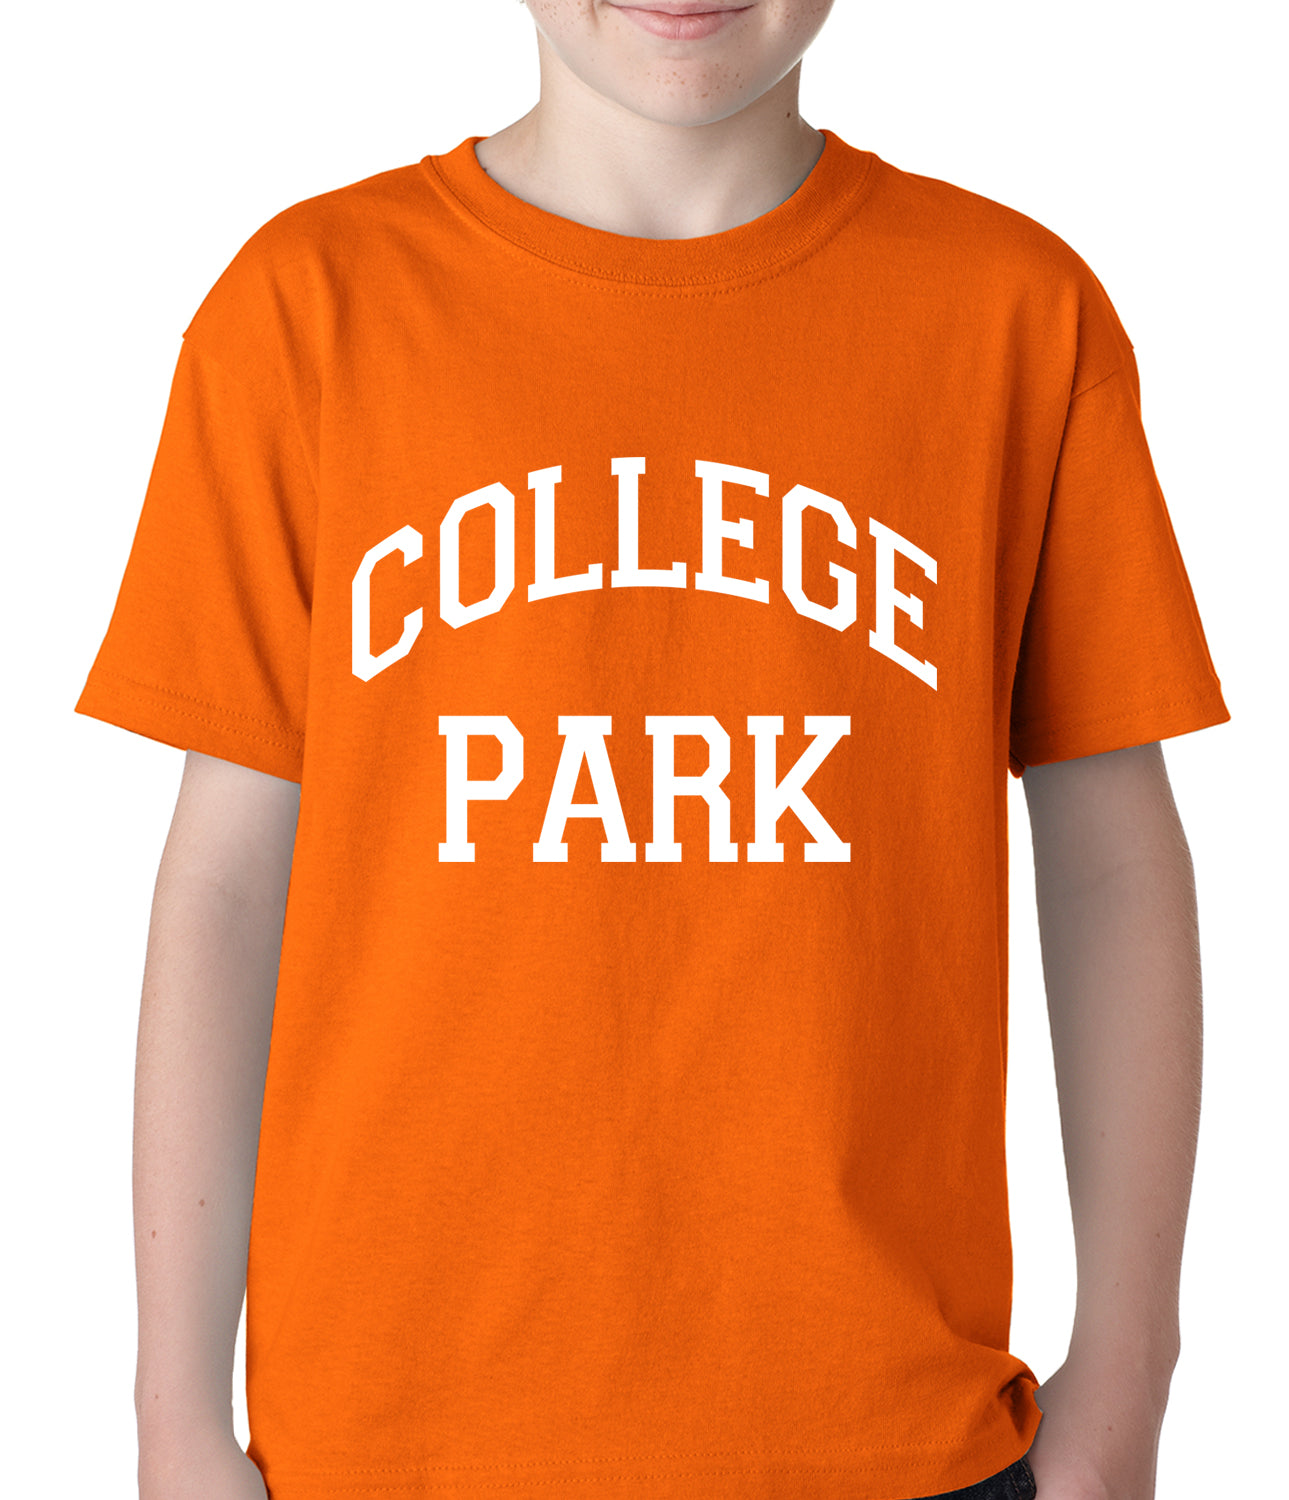 College Park Brooklyn Kids T-shirt